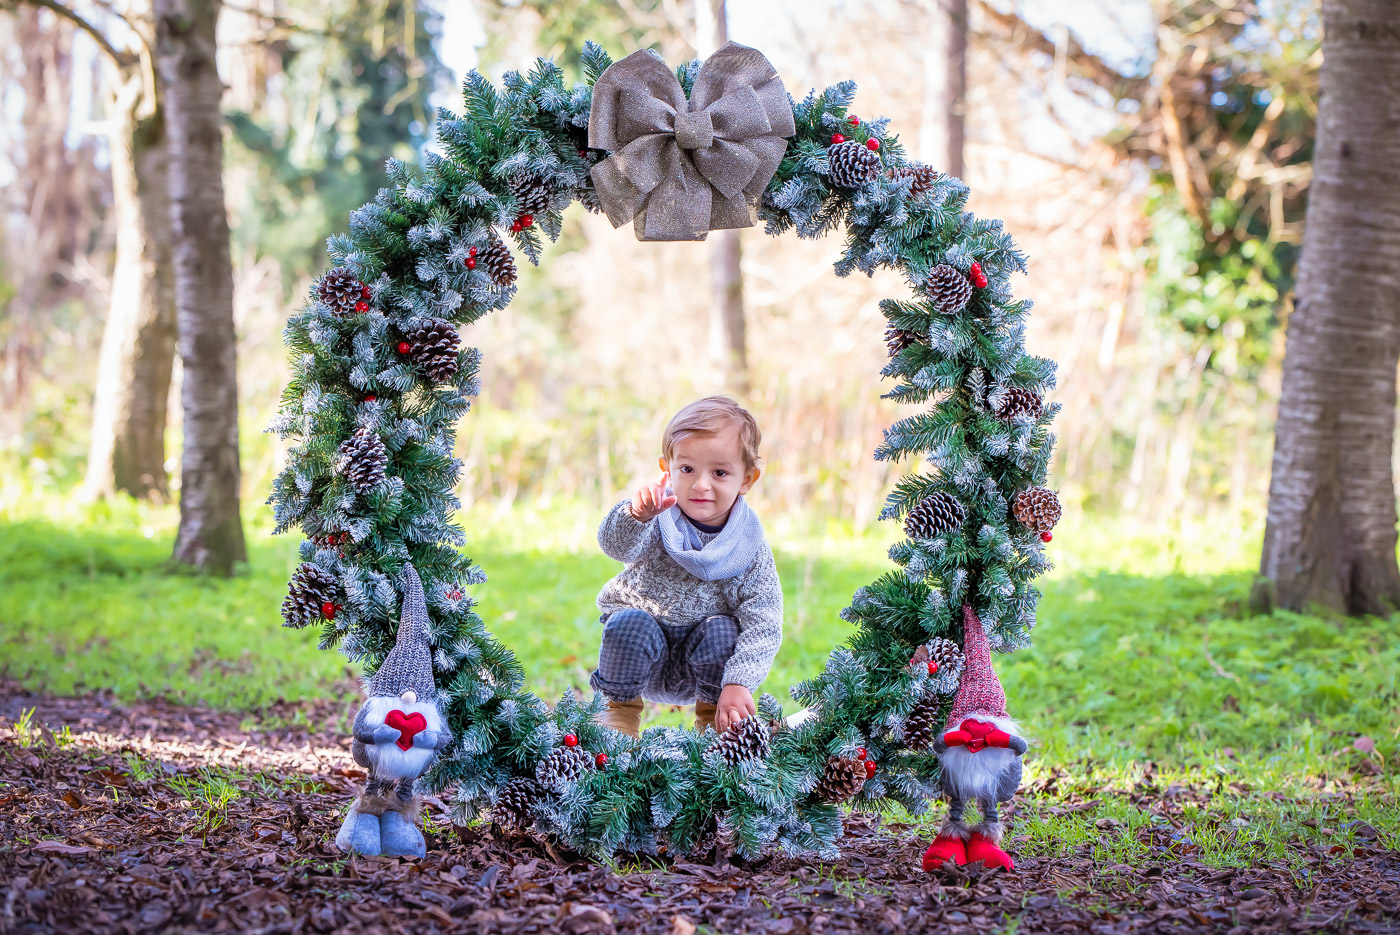 Little boy pointing with finger to mommy from the inside of a giant Christmas wreath